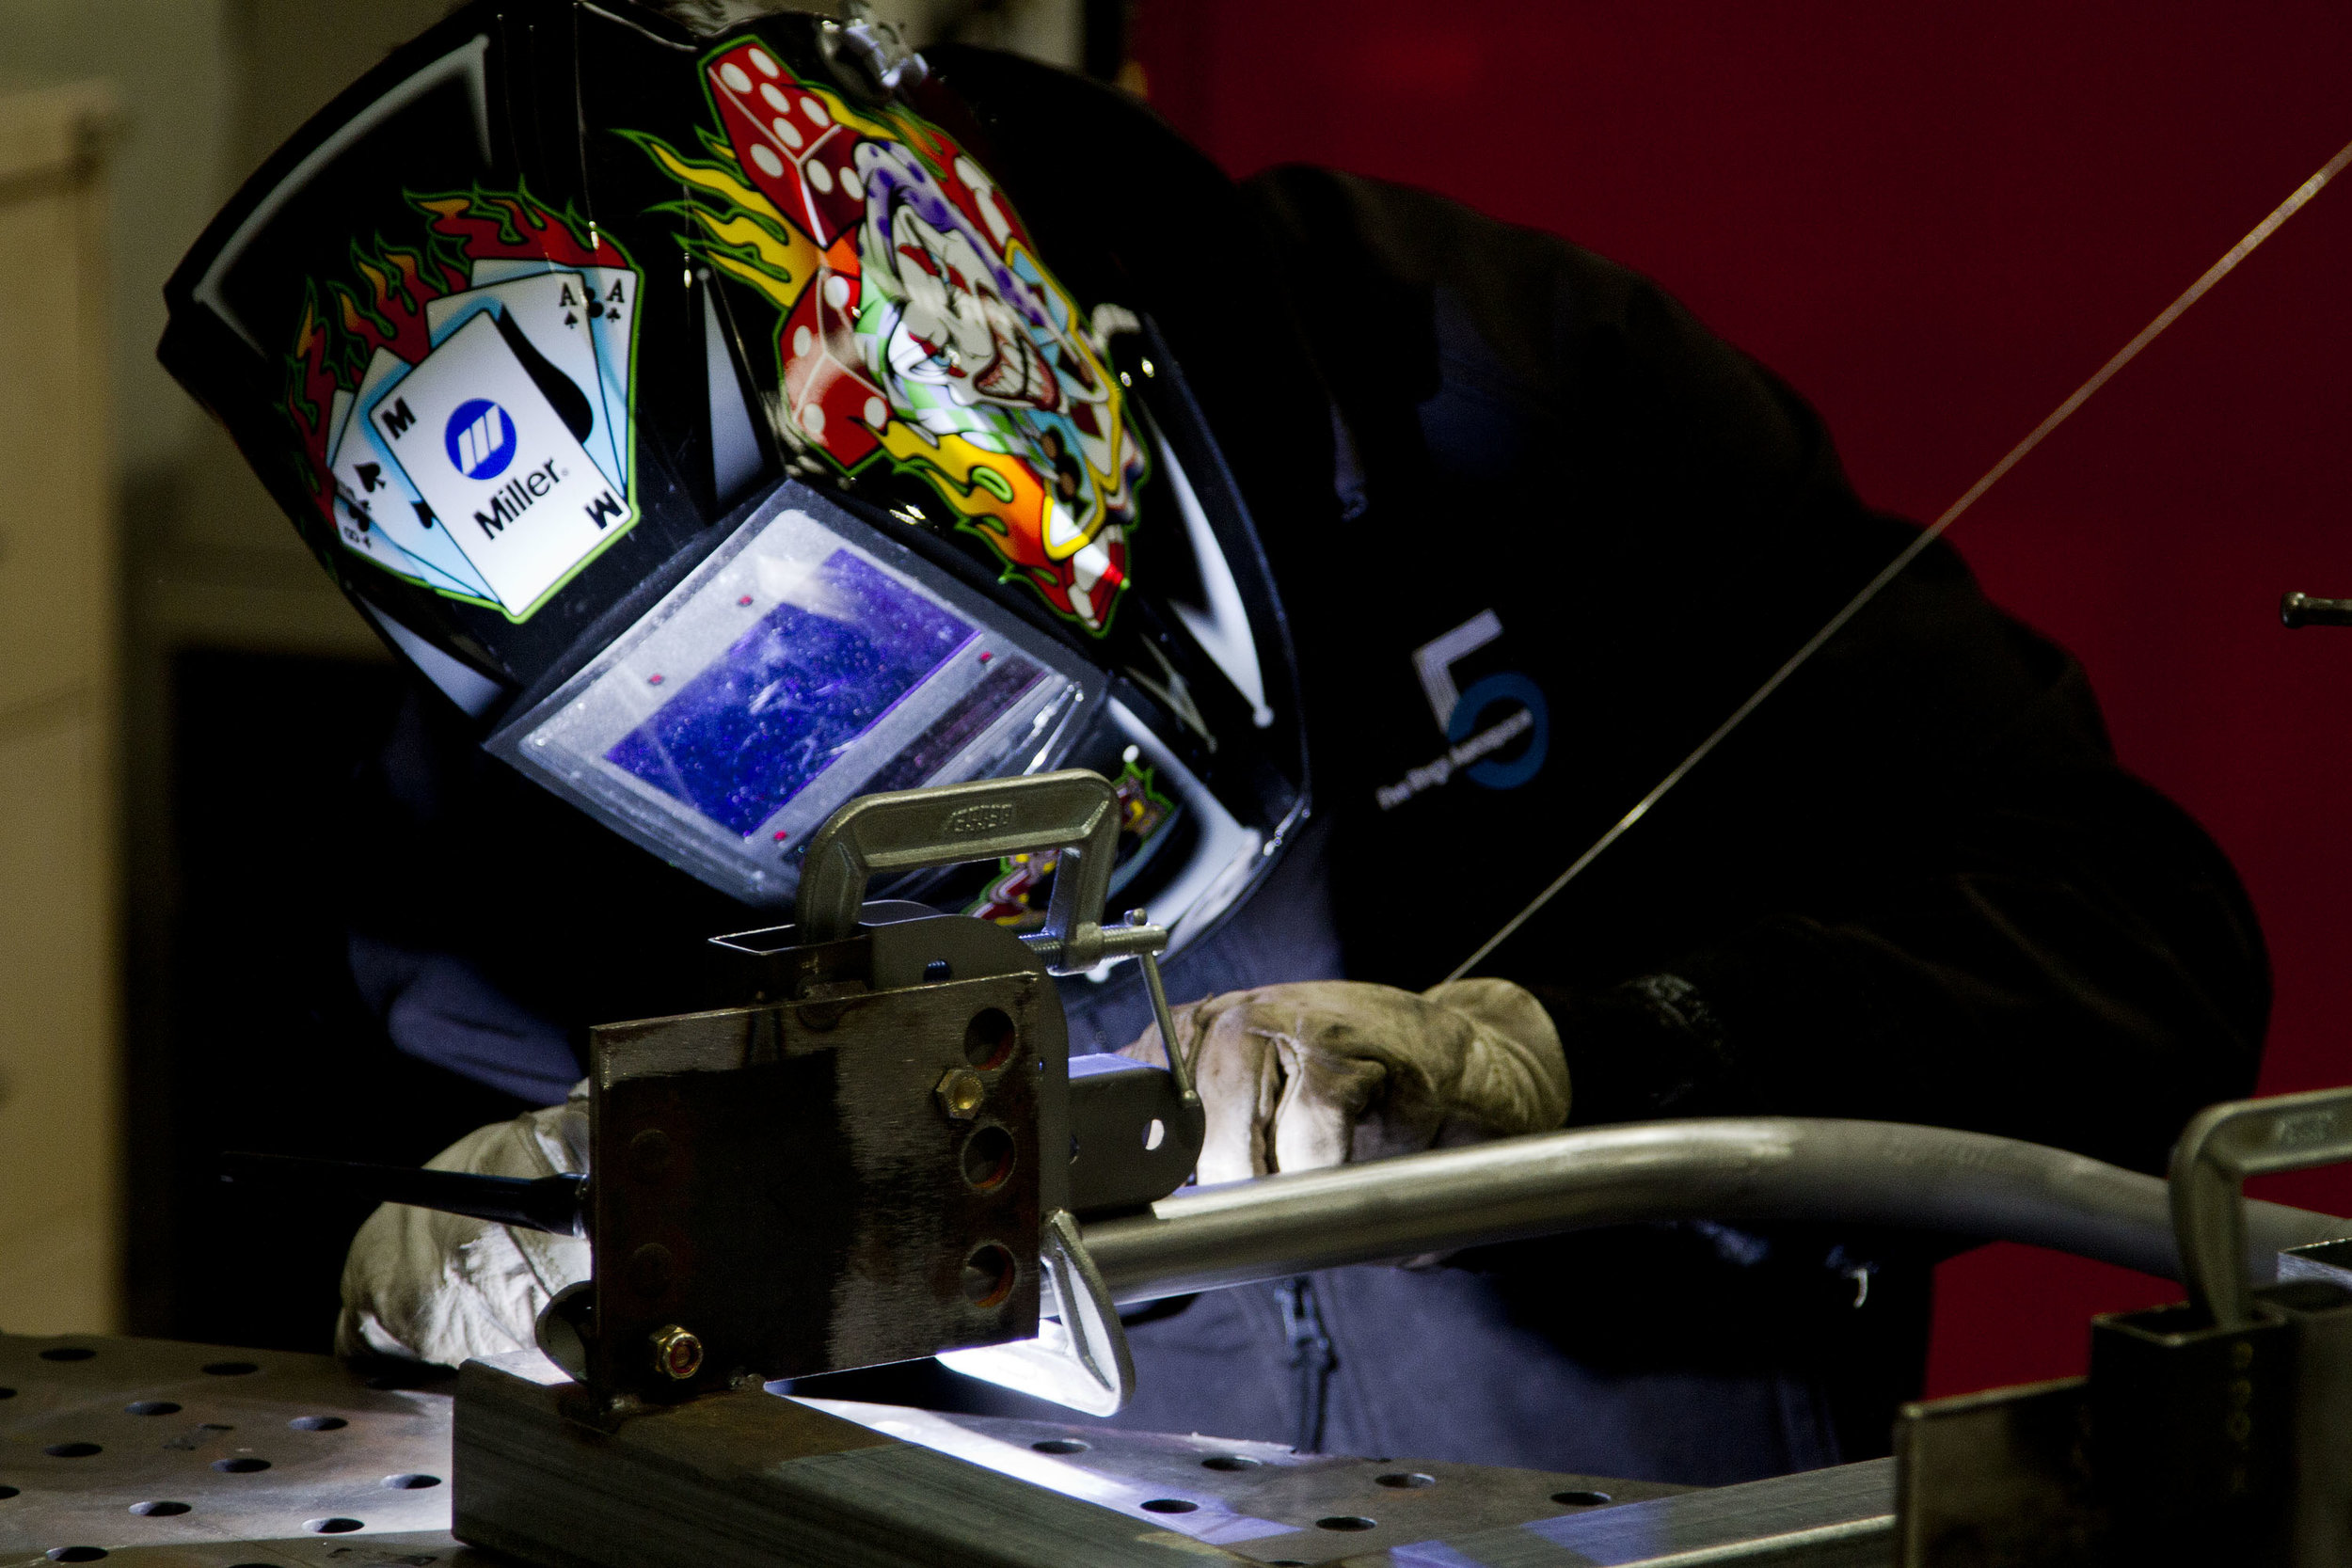 Aerospace Welding - Five Rings Aerospace maintains the capability to weld in house and is able to provide high quality welding solutions to solve any problem.